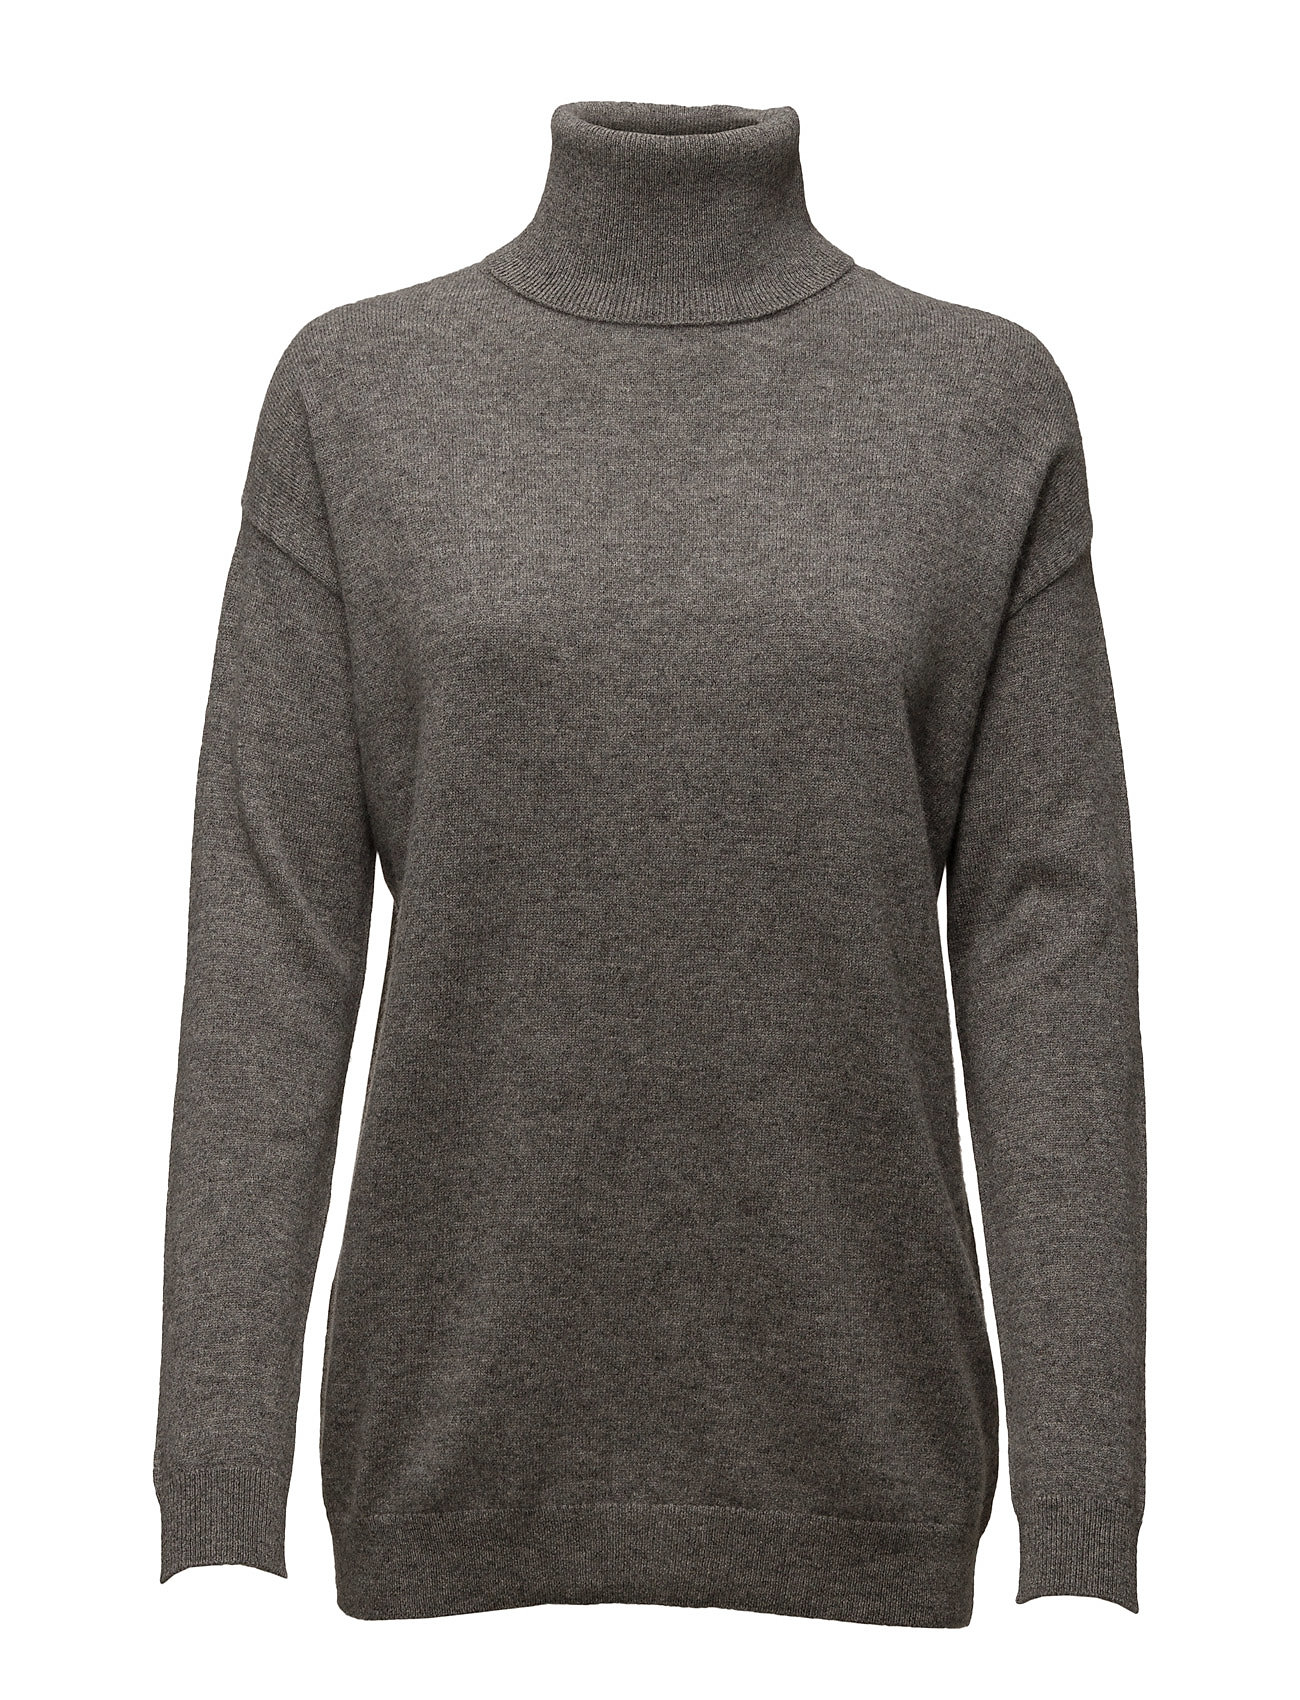 Day Birger et Mikkelsen Day Cashmere - MEDIUM GREY MEL.